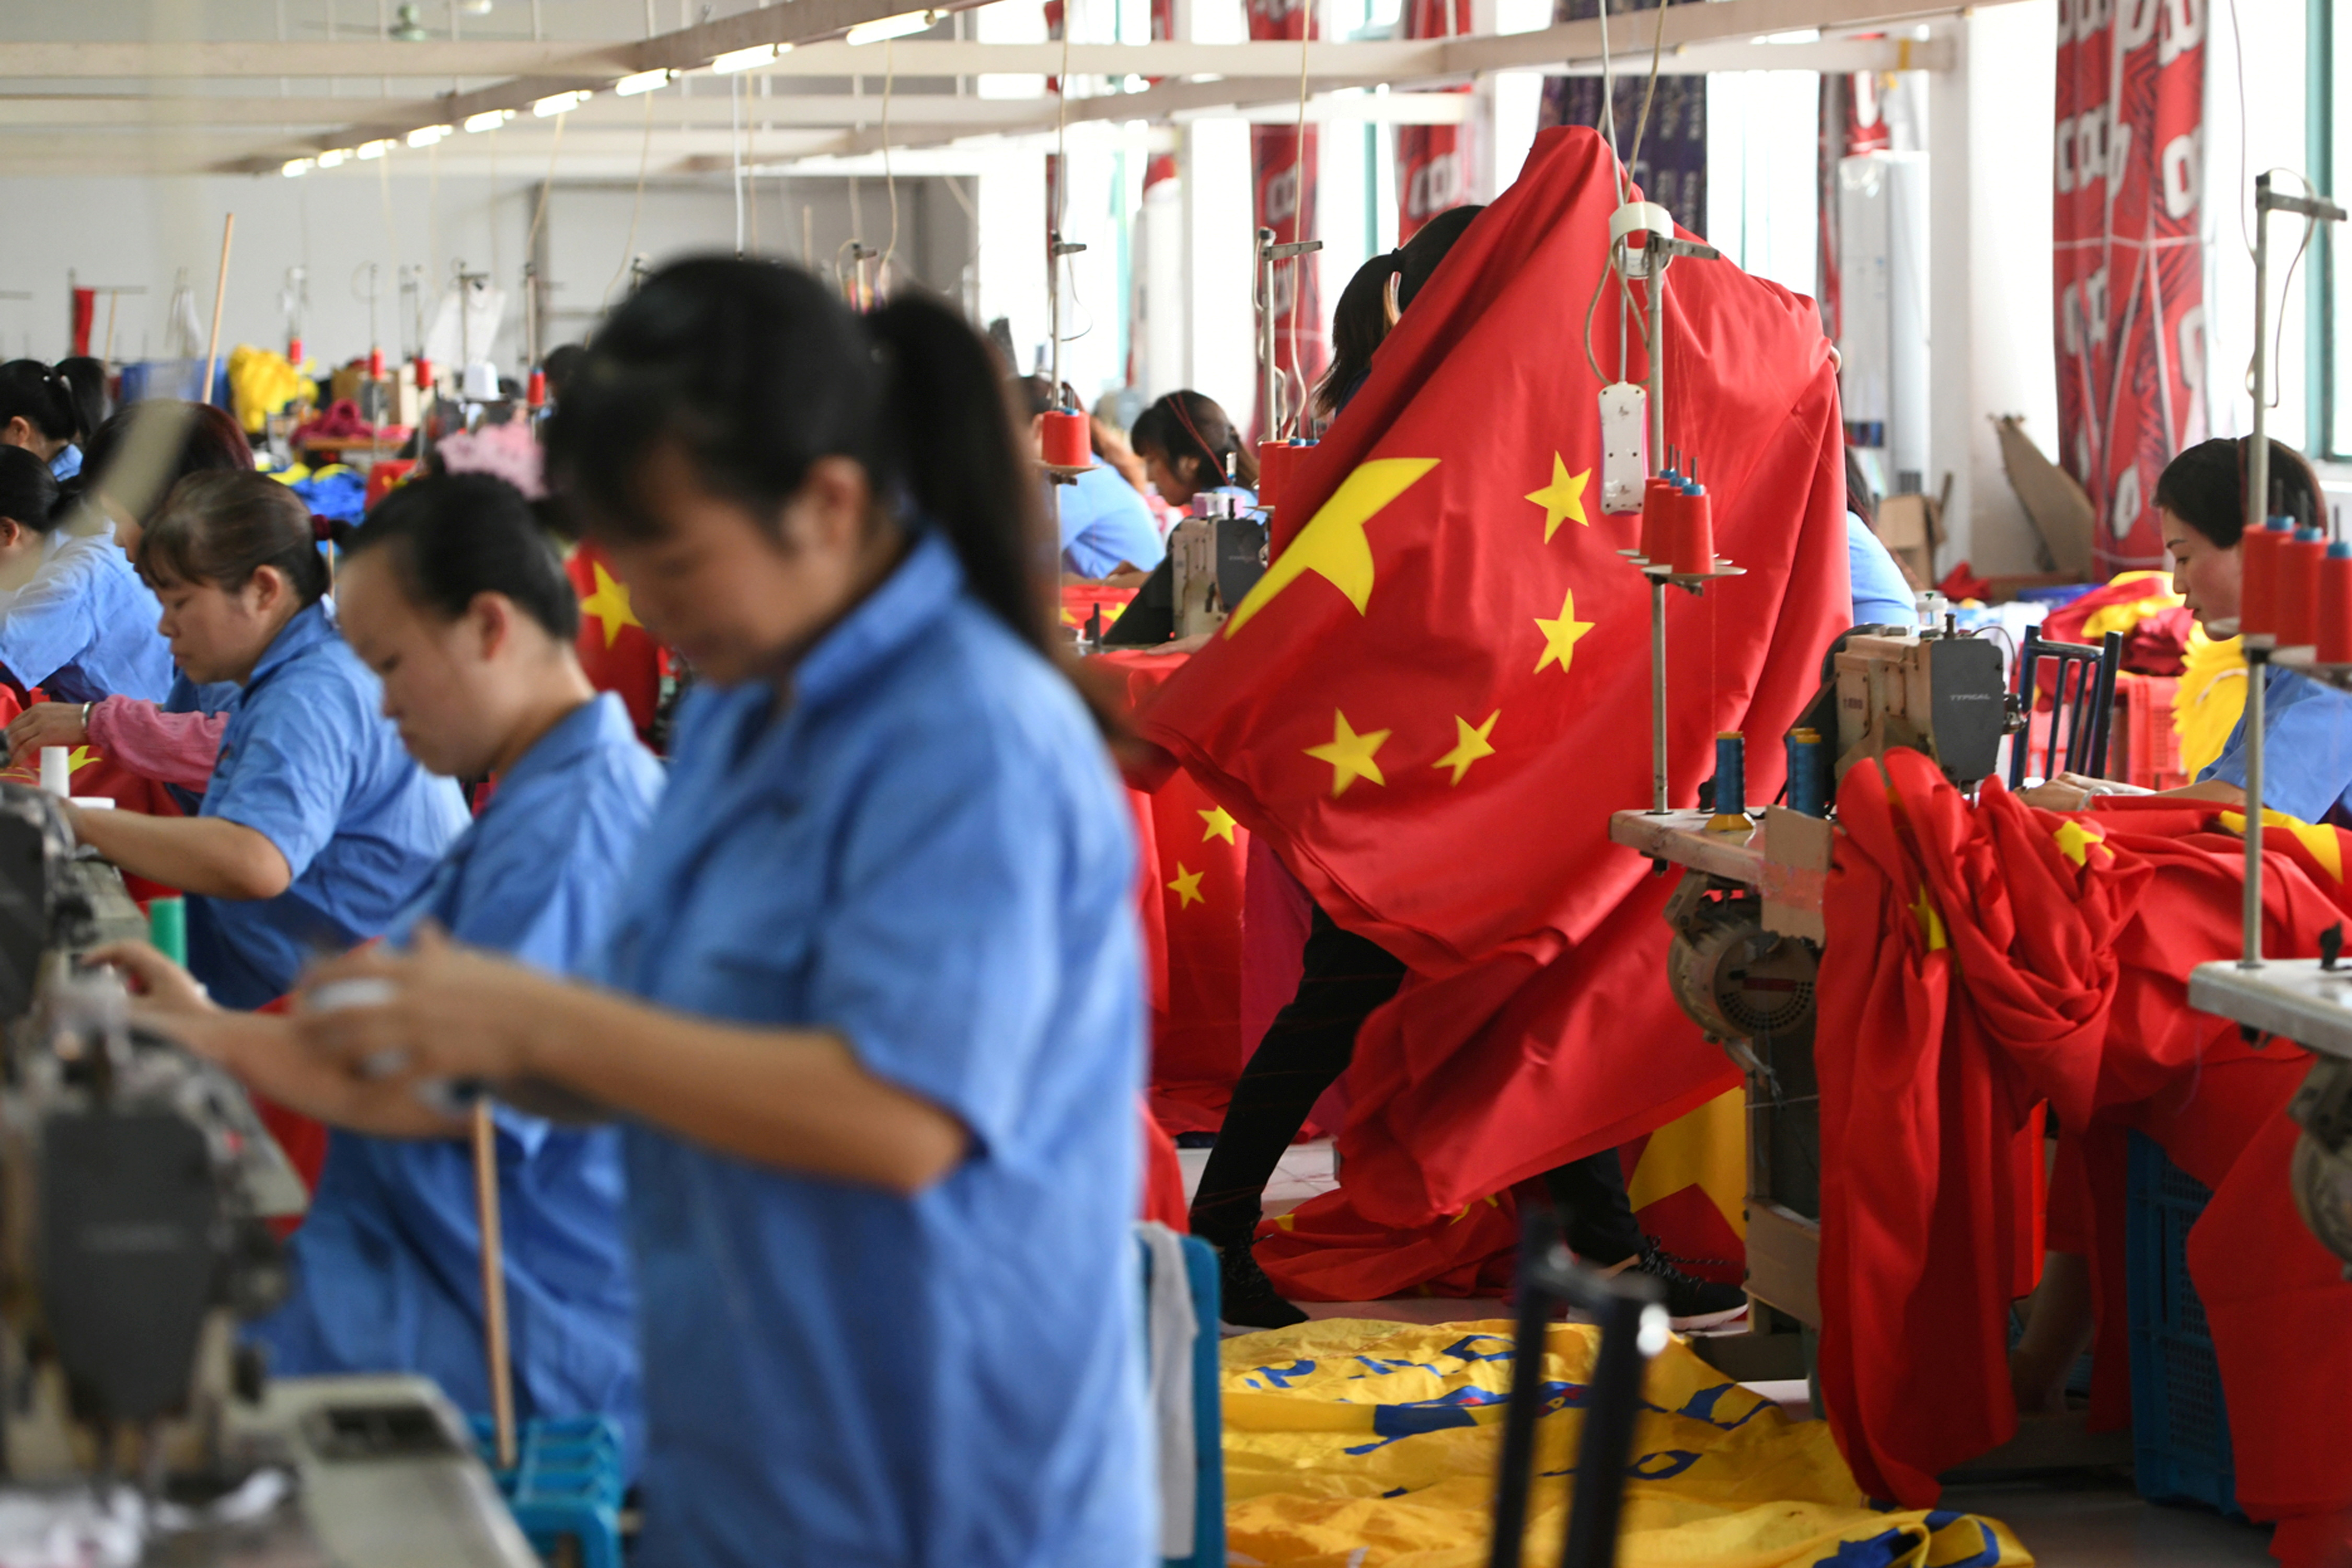 Workers make Chinese flags at a factory in Jiaxing, Zhejiang province, China September 25, 2019. REUTERS/Stringer/File Photo